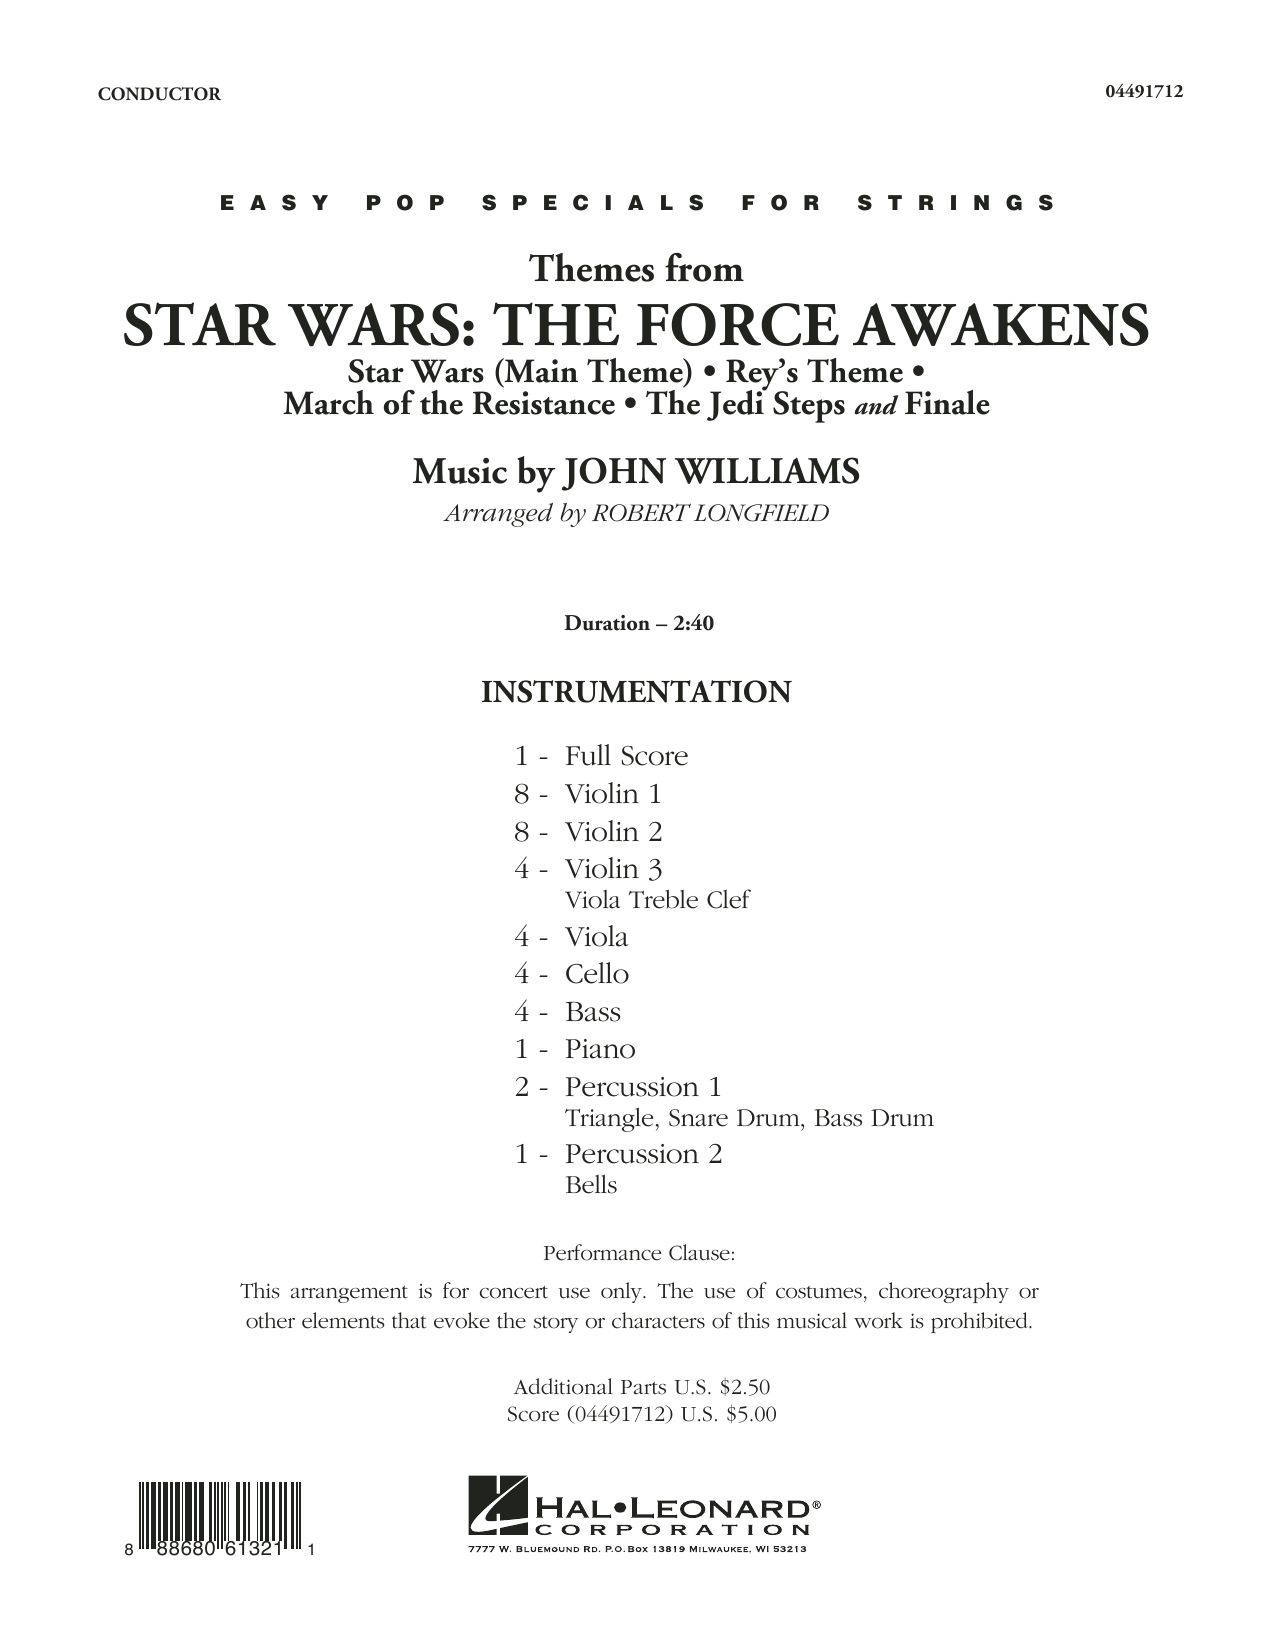 John Williams - Themes from Star Wars: The Force Awakens - Conductor Score (Full Score)